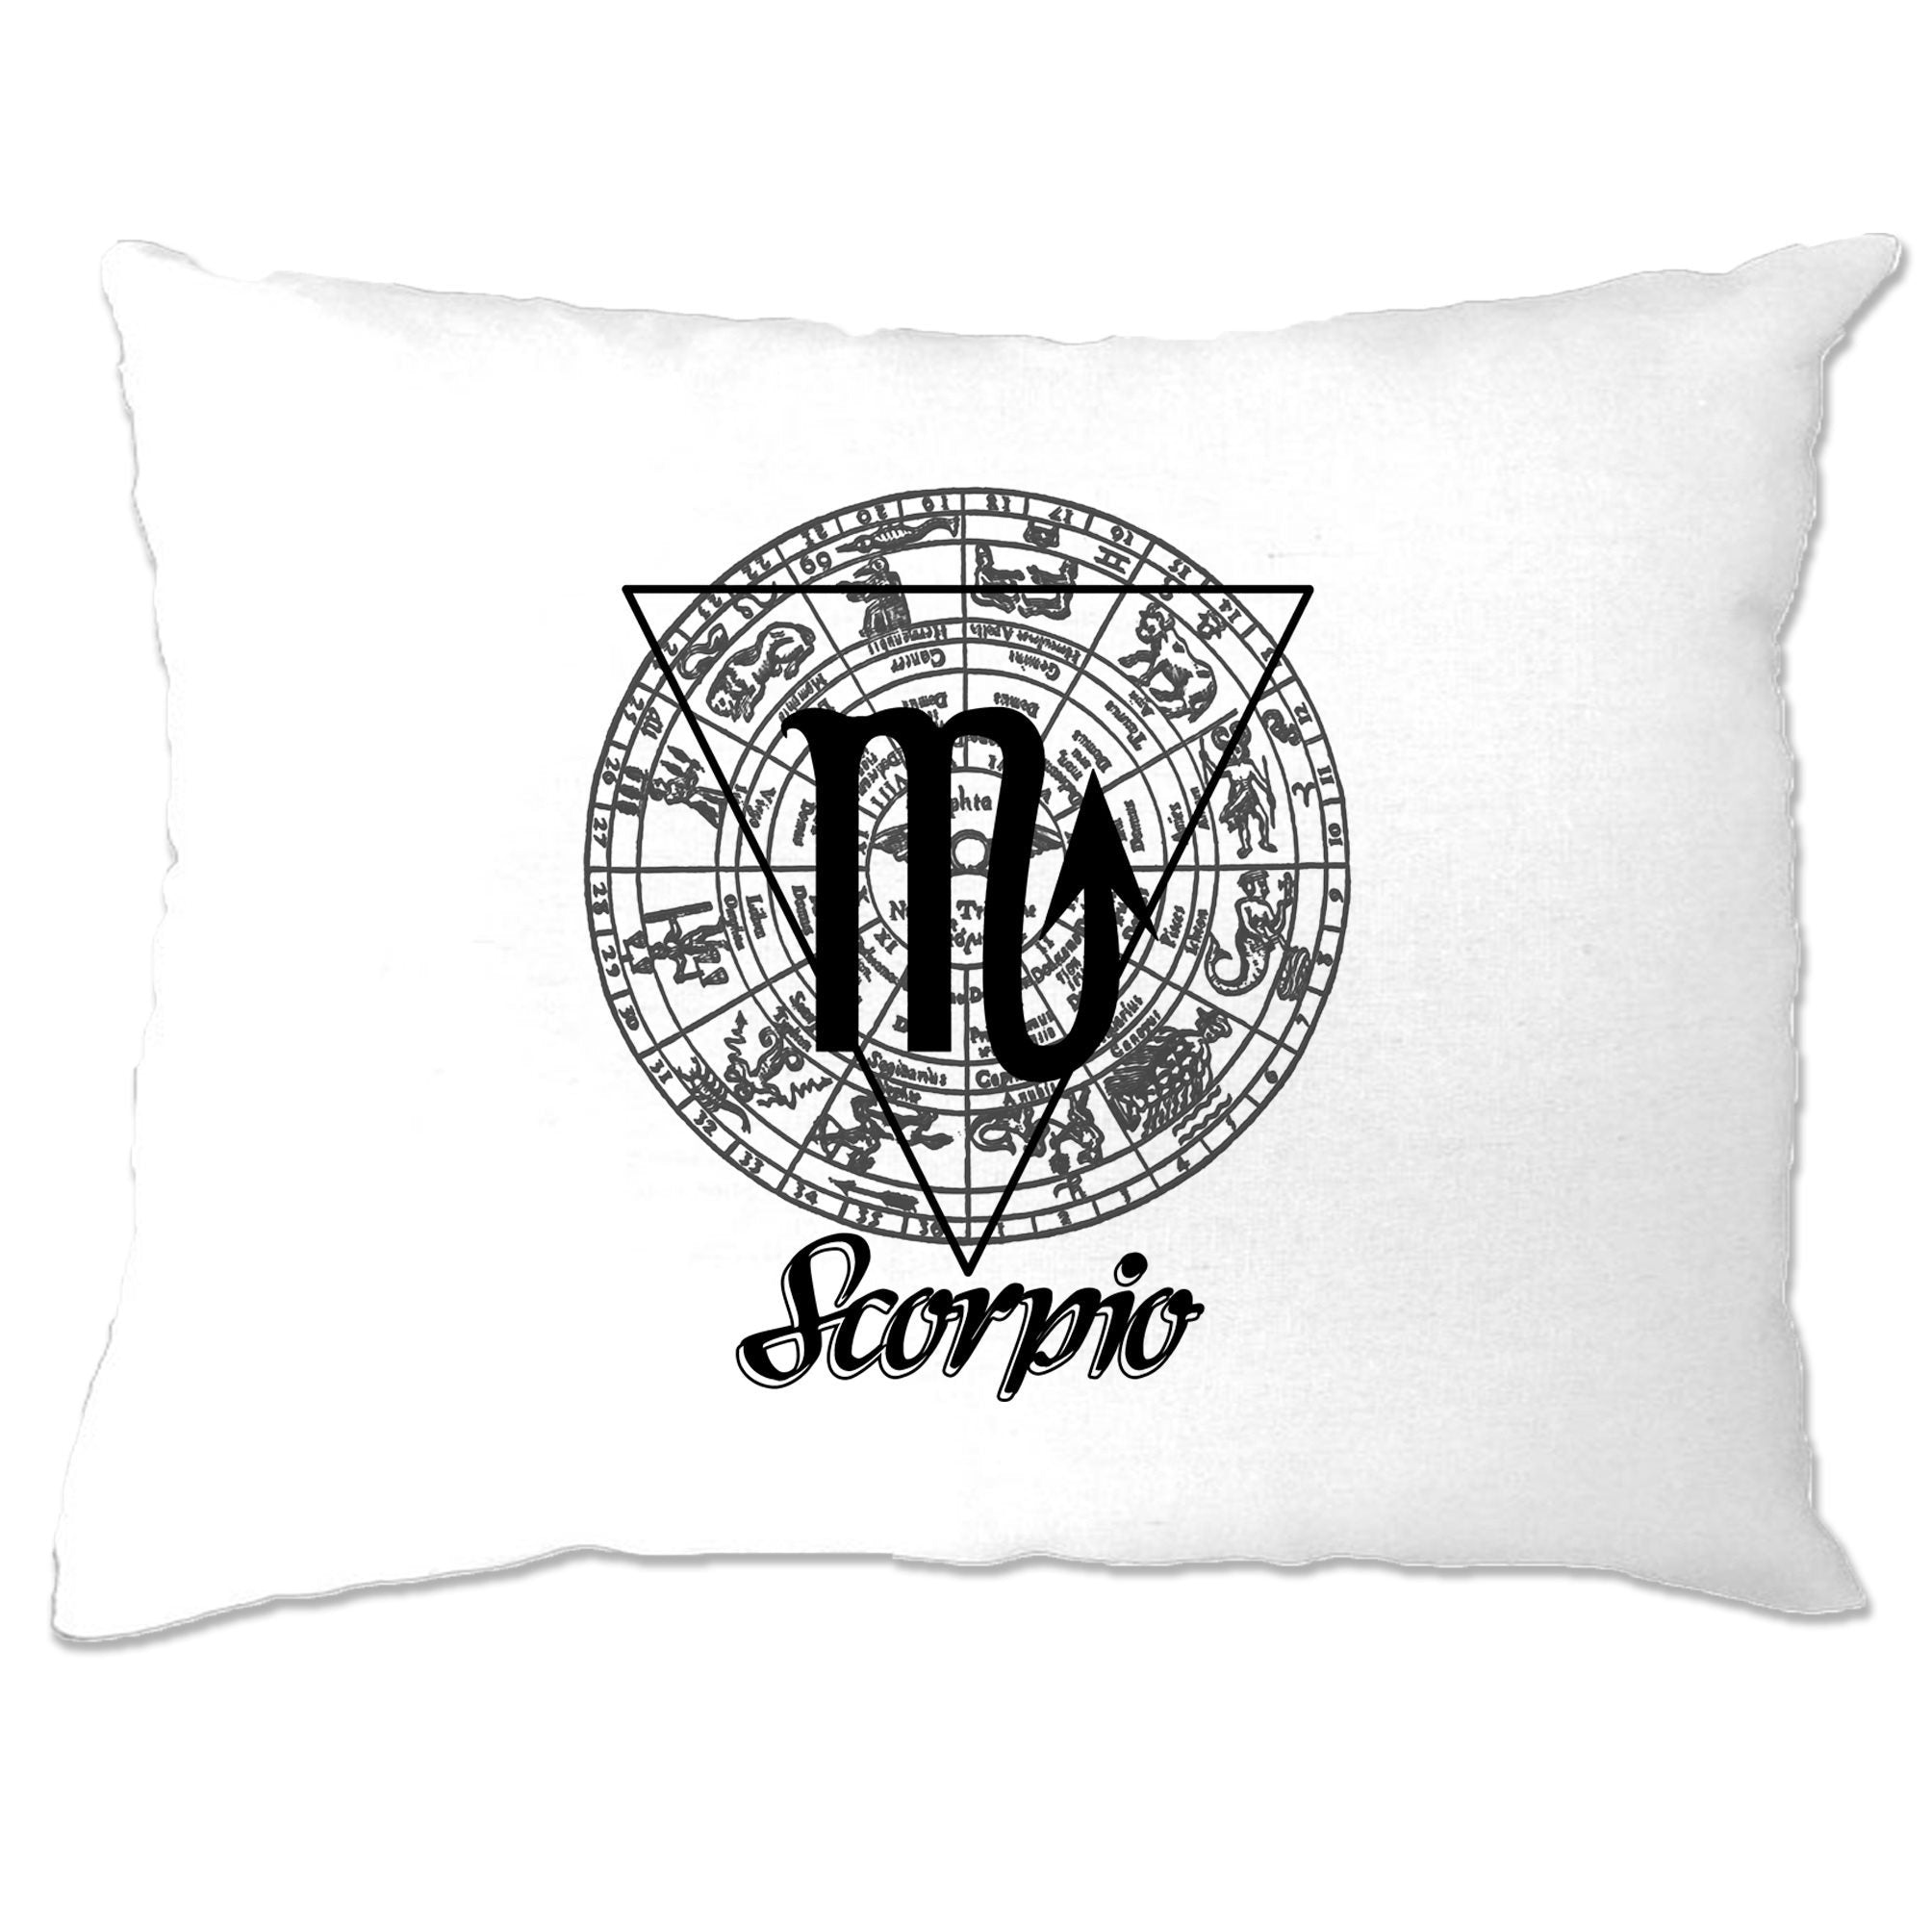 Horoscope Pillow Case Scorpio Zodiac Star Sign Birthday